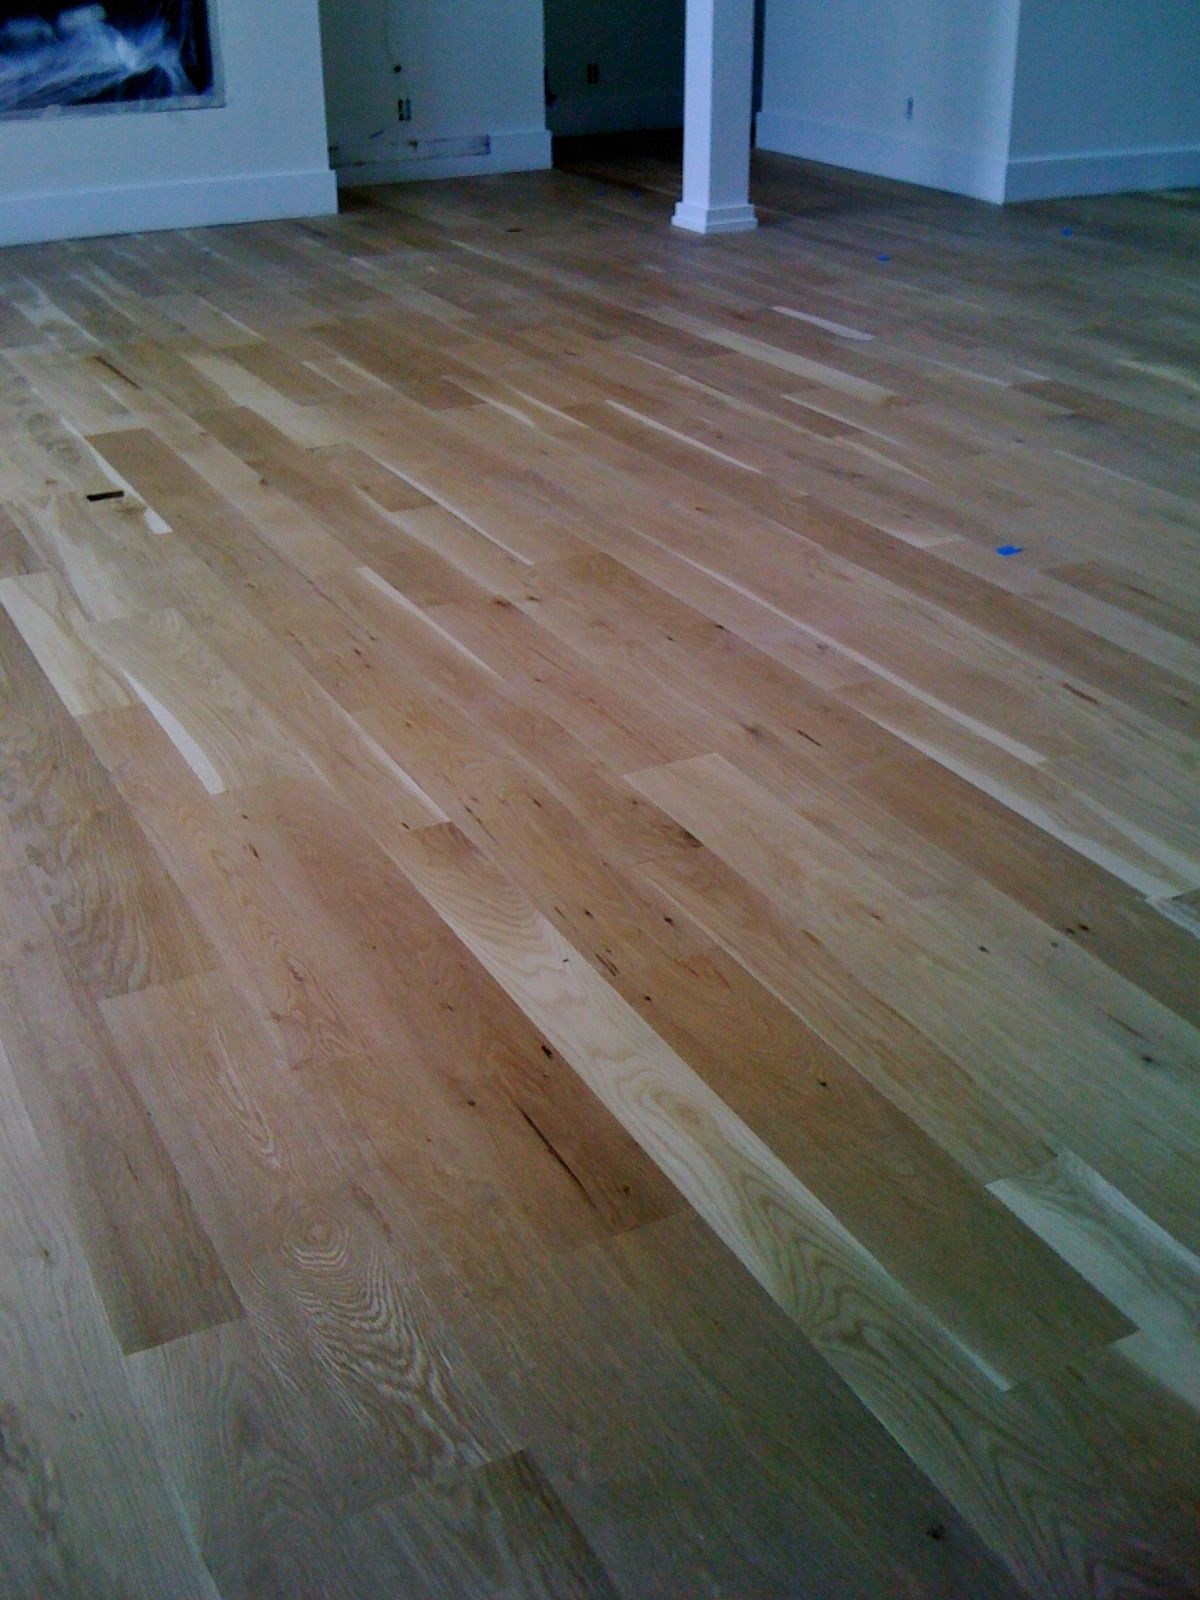 White Oak Floors With 3 Coats Of Bona Naturale Water Based Finish